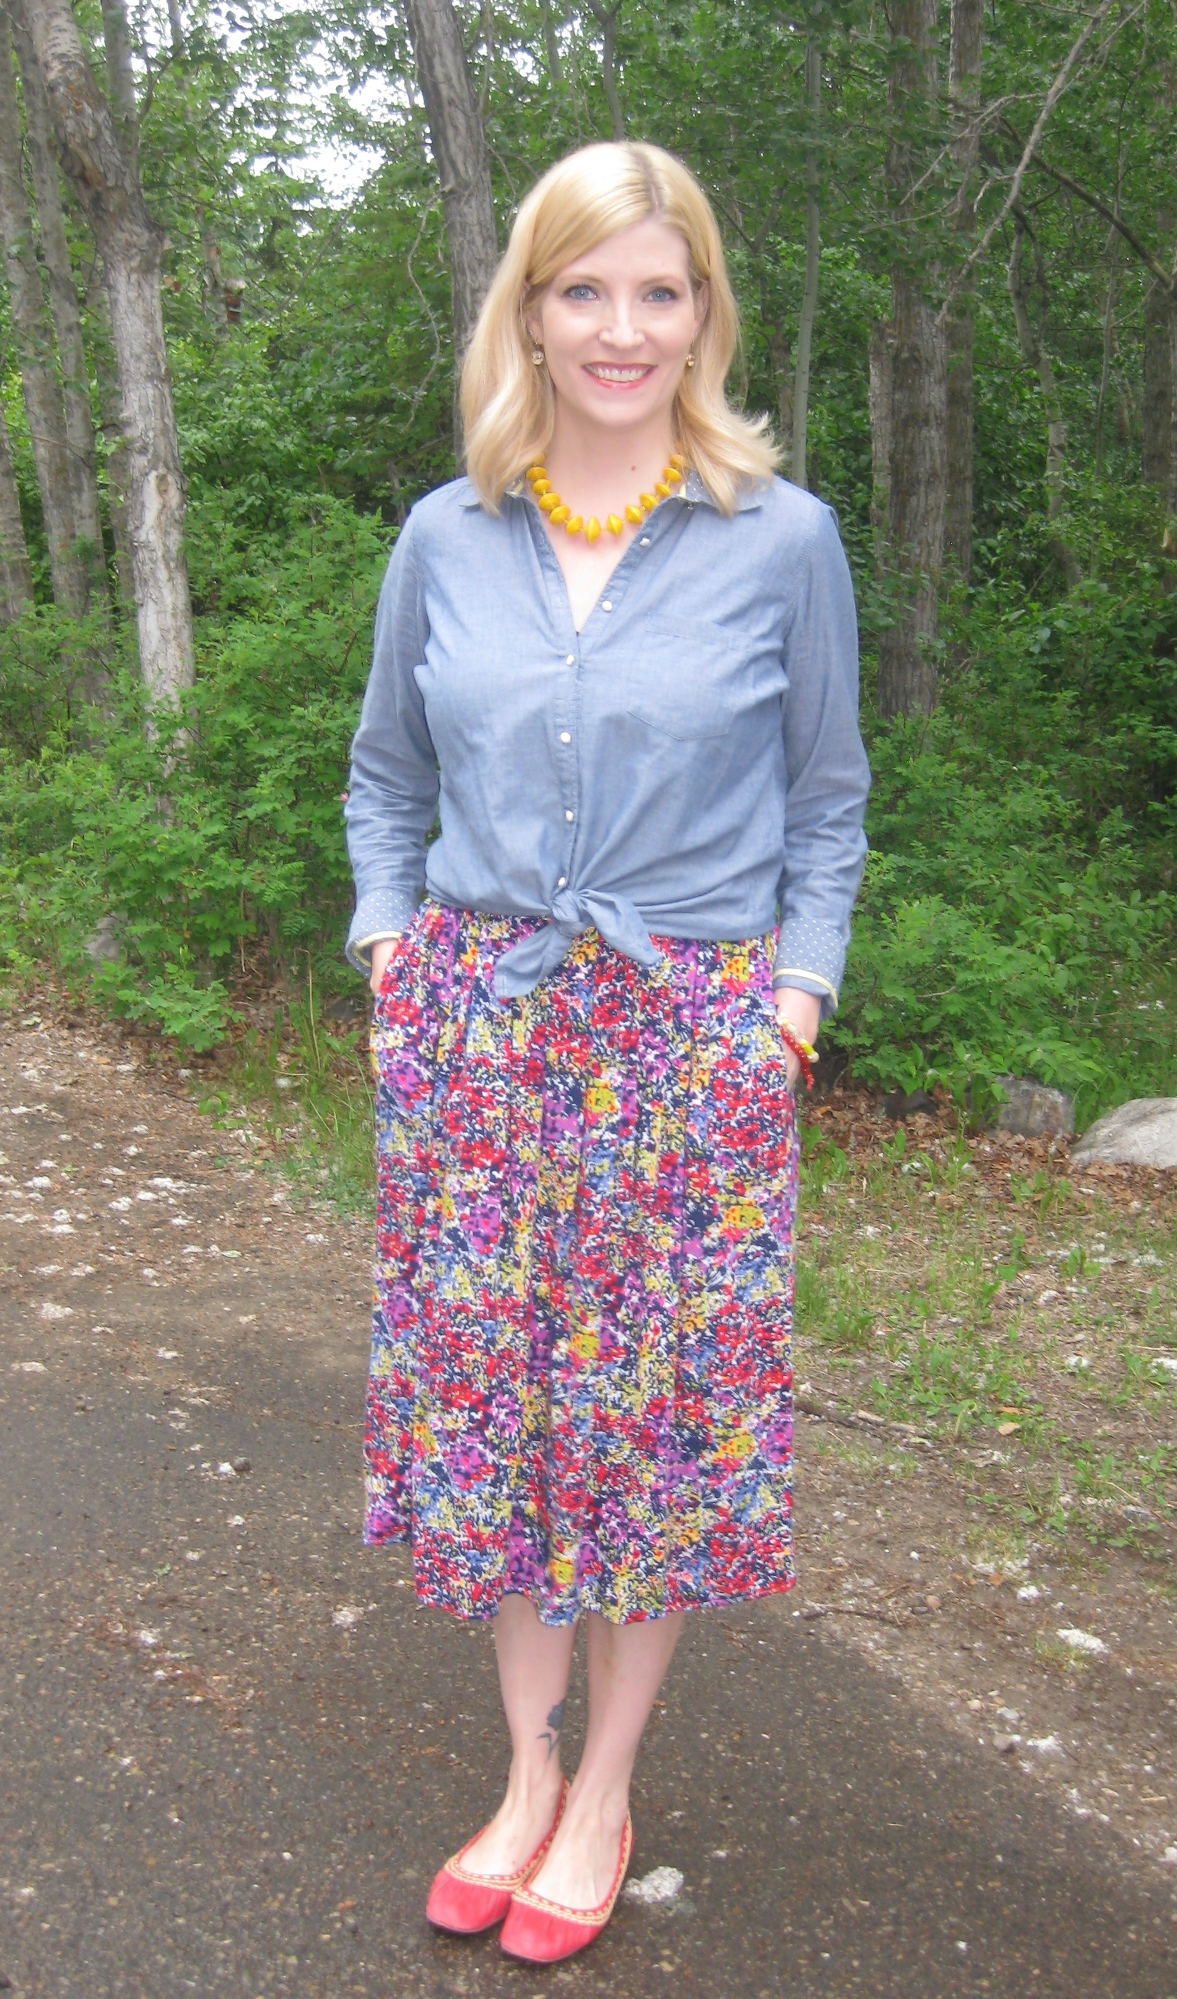 Vintage midi skirt $3.50 and Miz Mooz red flats $13.30 from Value Village, chambray $6 from Salvation Army Thrift Shop, I Am Just One yellow necklace, She Does Create bracelets and earrings.